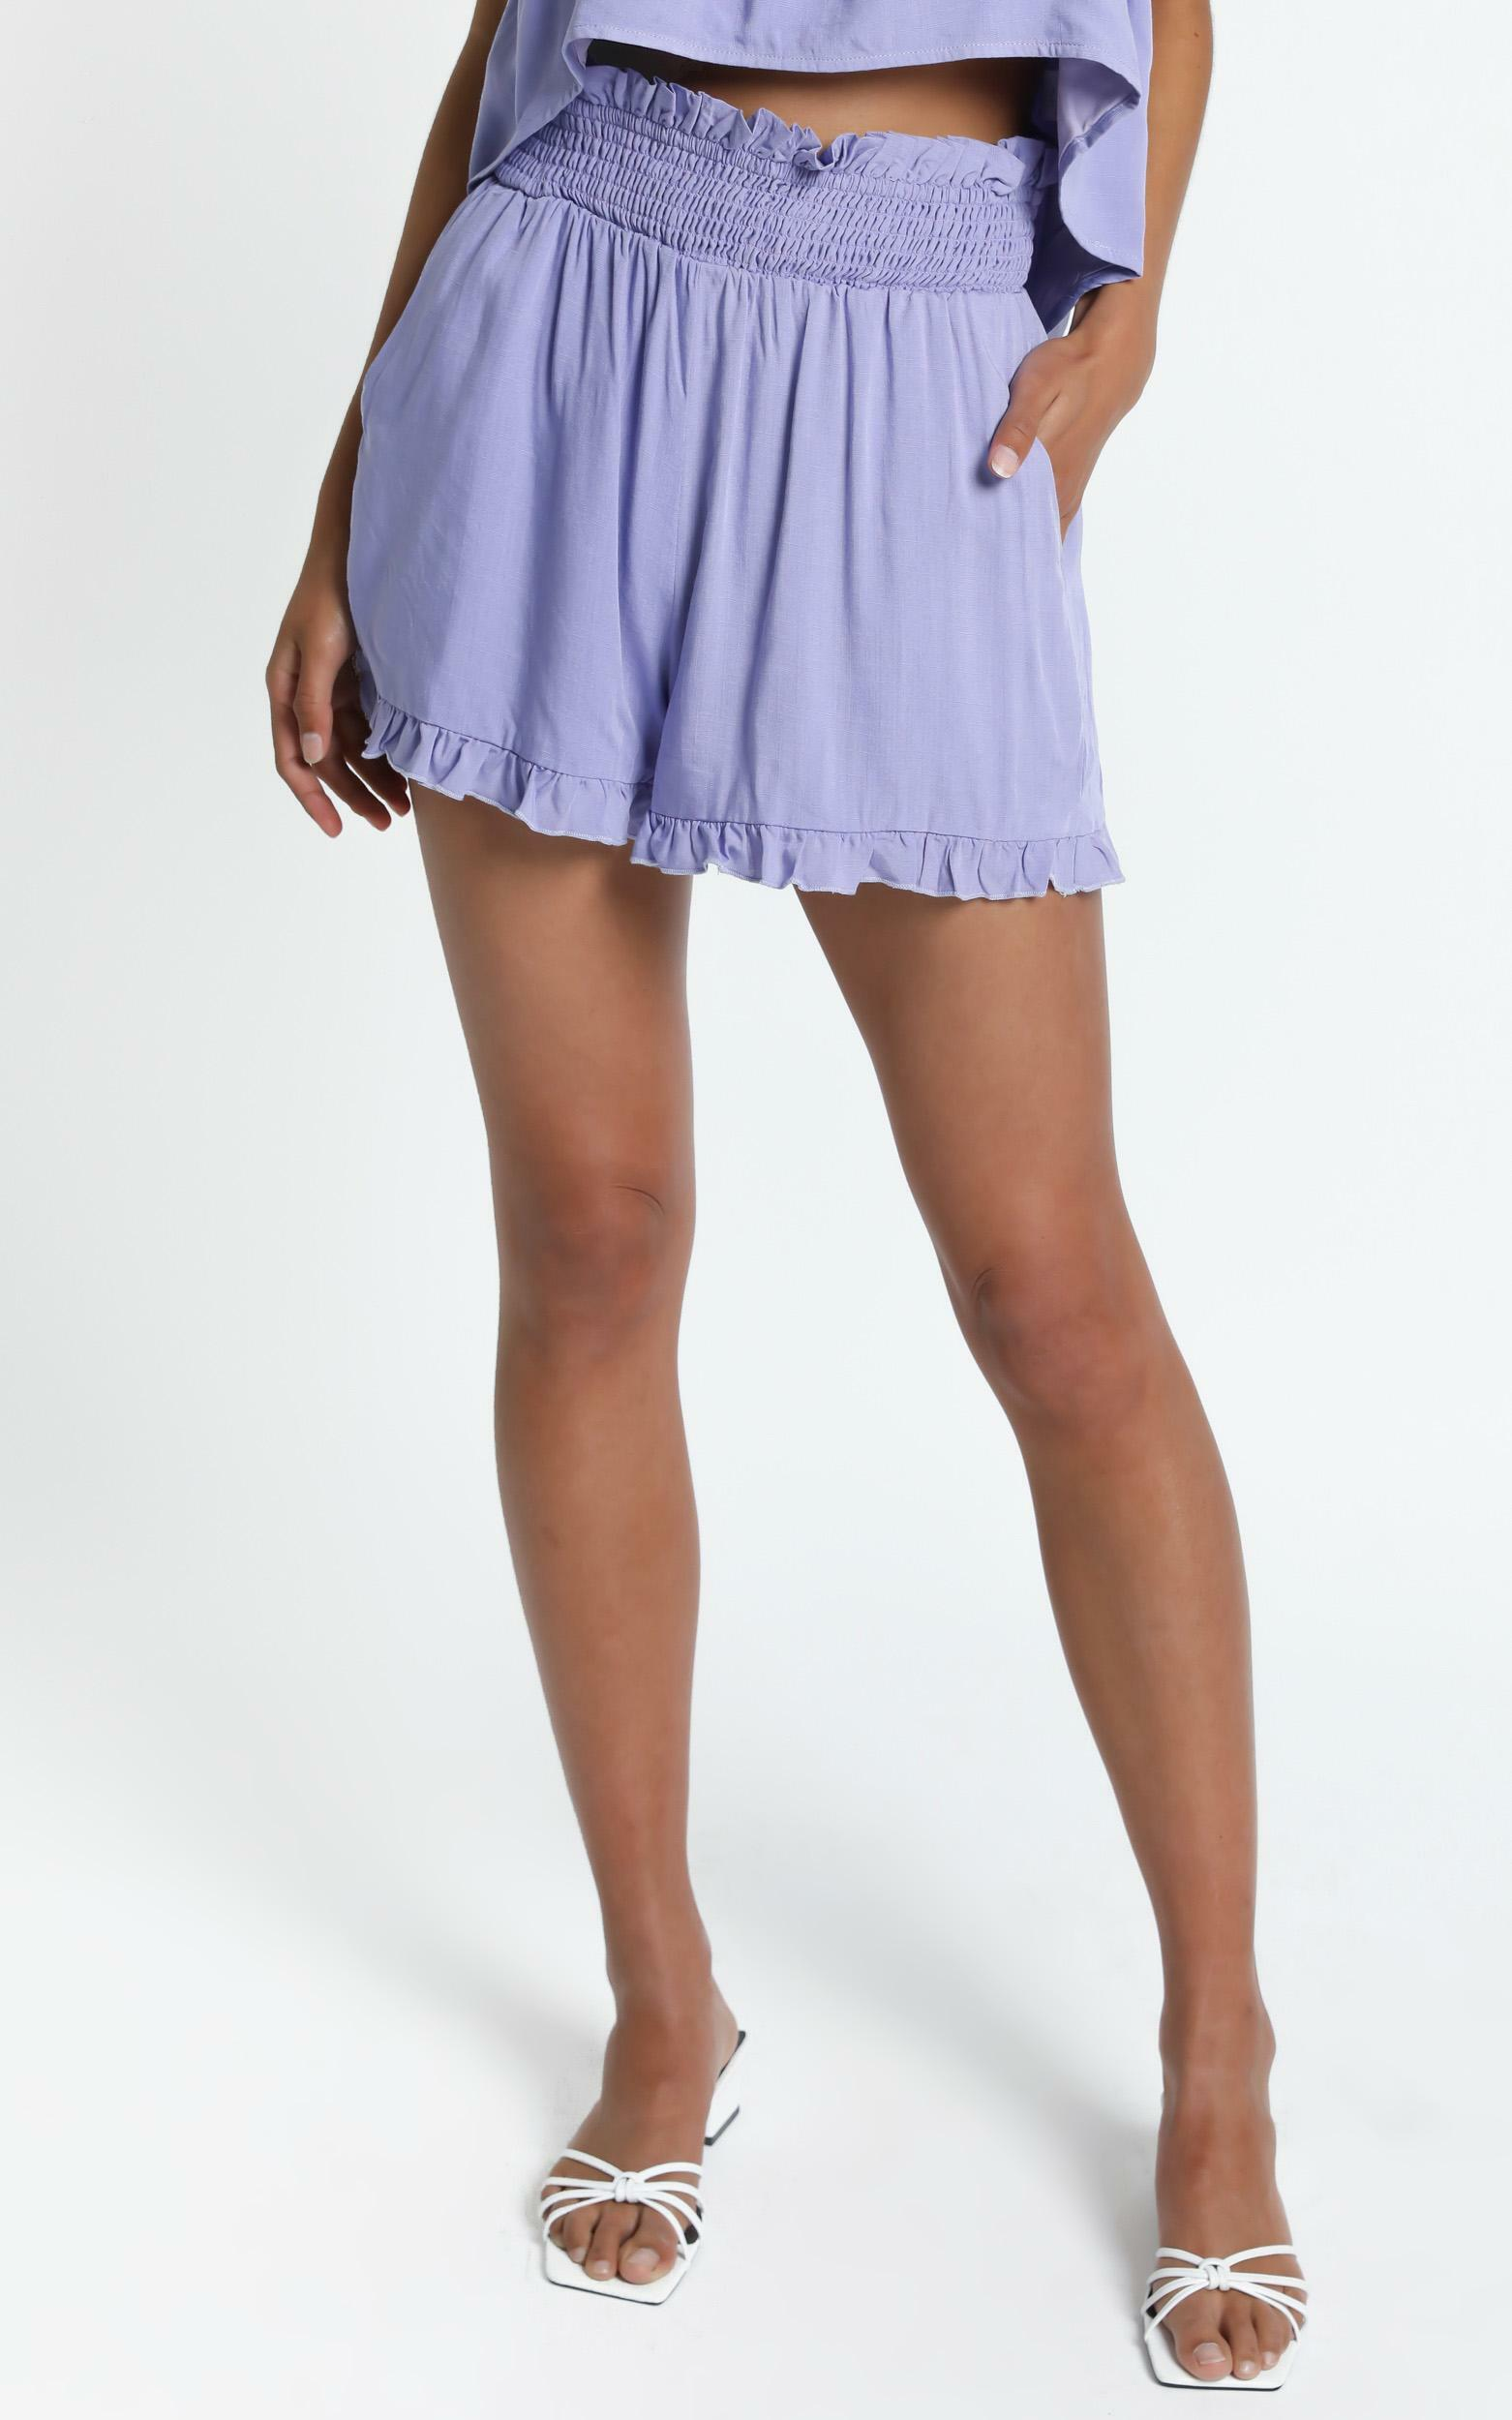 Hampshire Shorts in Lilac - 6 (XS), PRP1, hi-res image number null